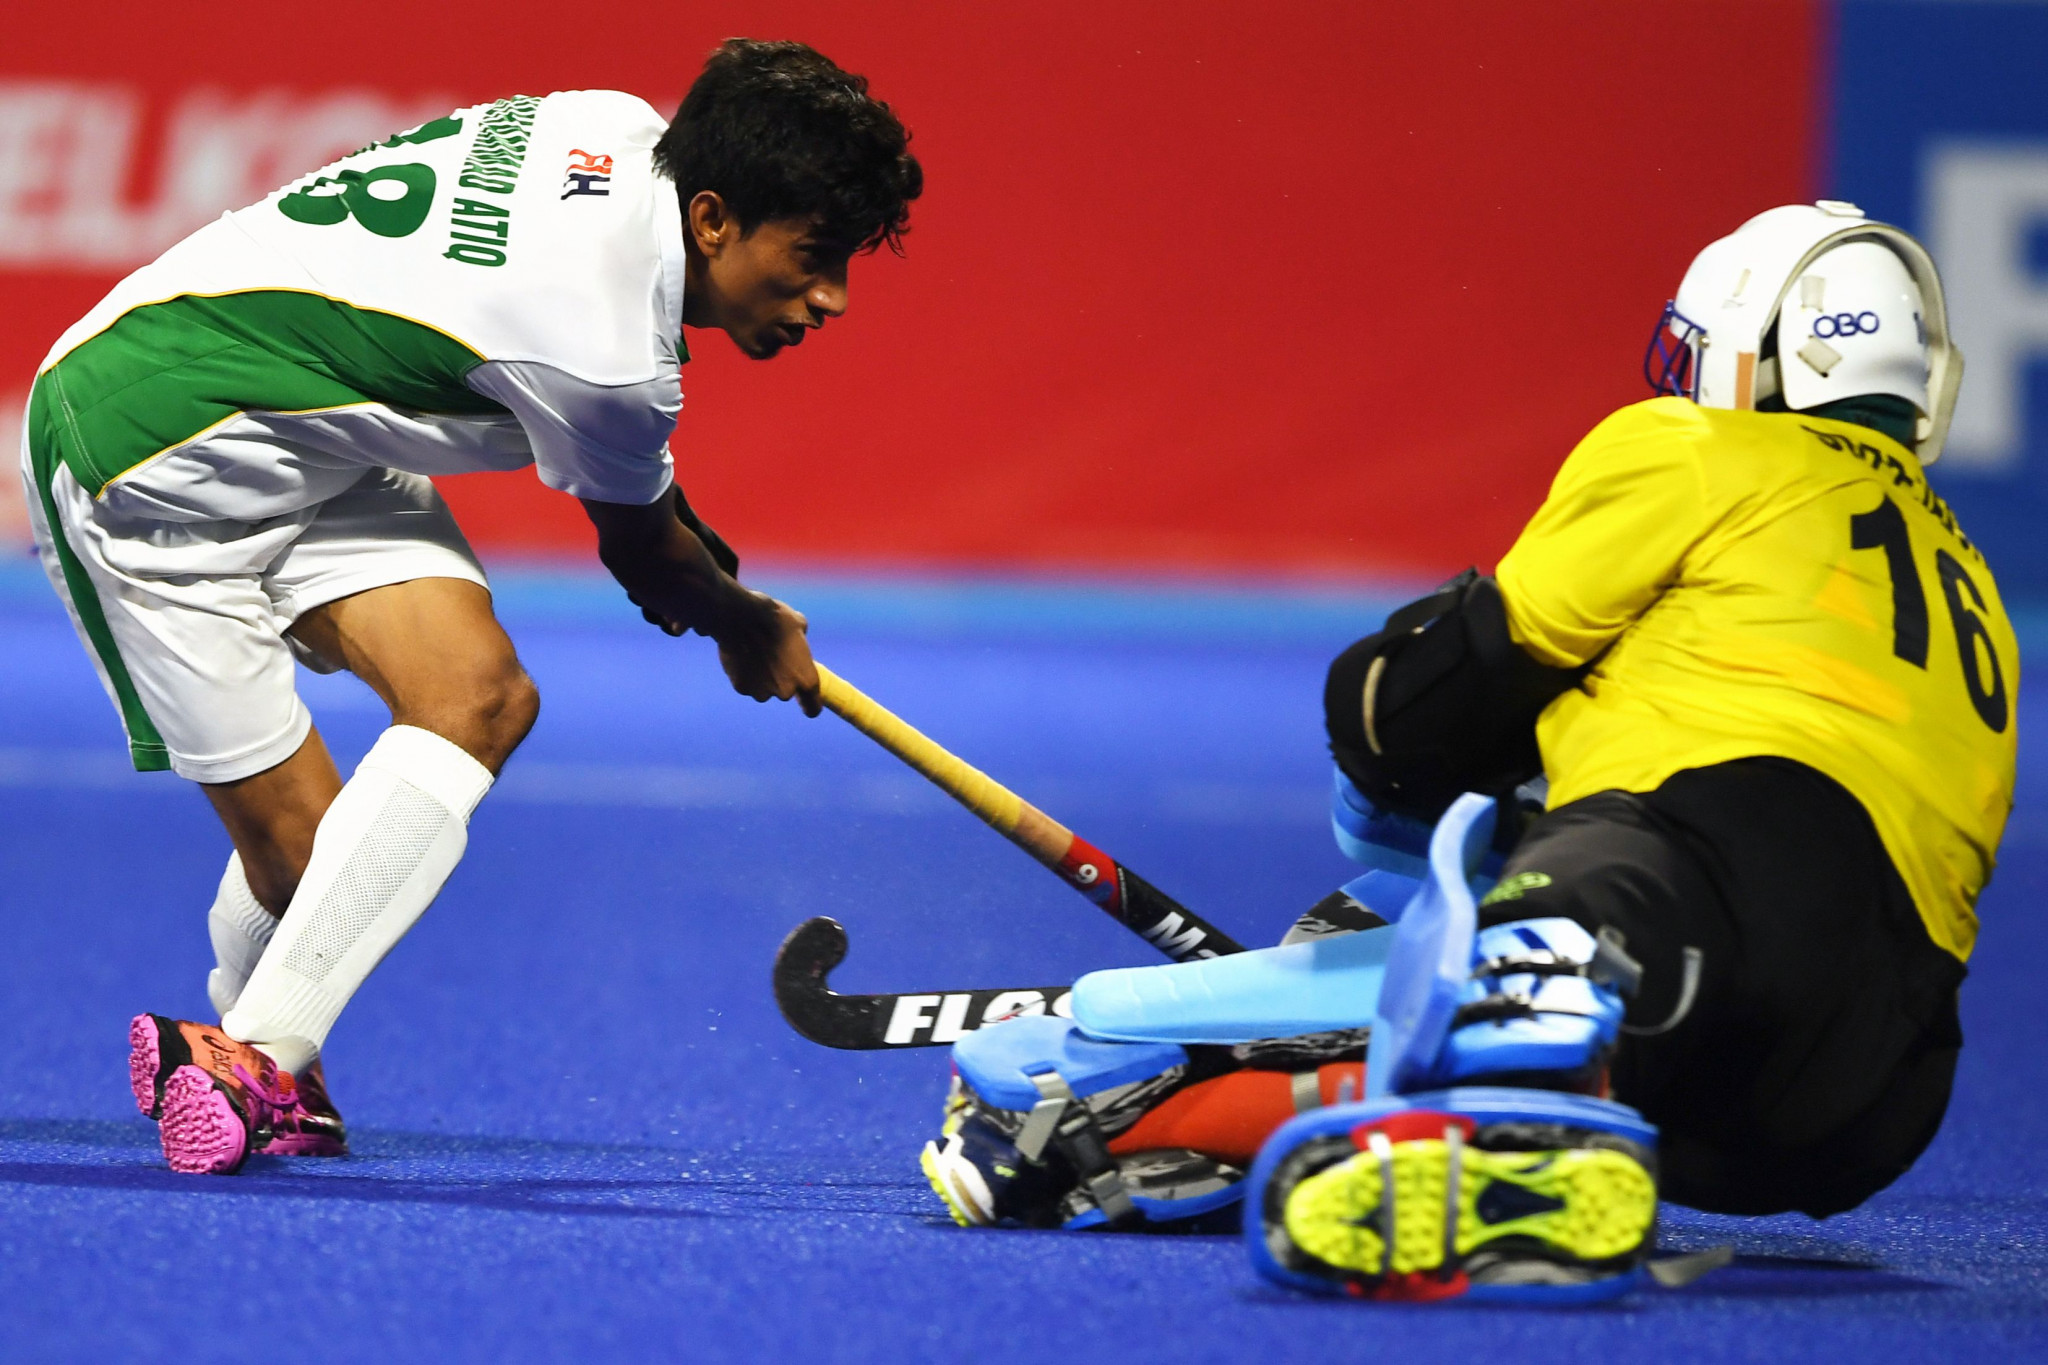 The event is due to be the first major hockey tournament held in Pakistan for over a decade ©Getty Images